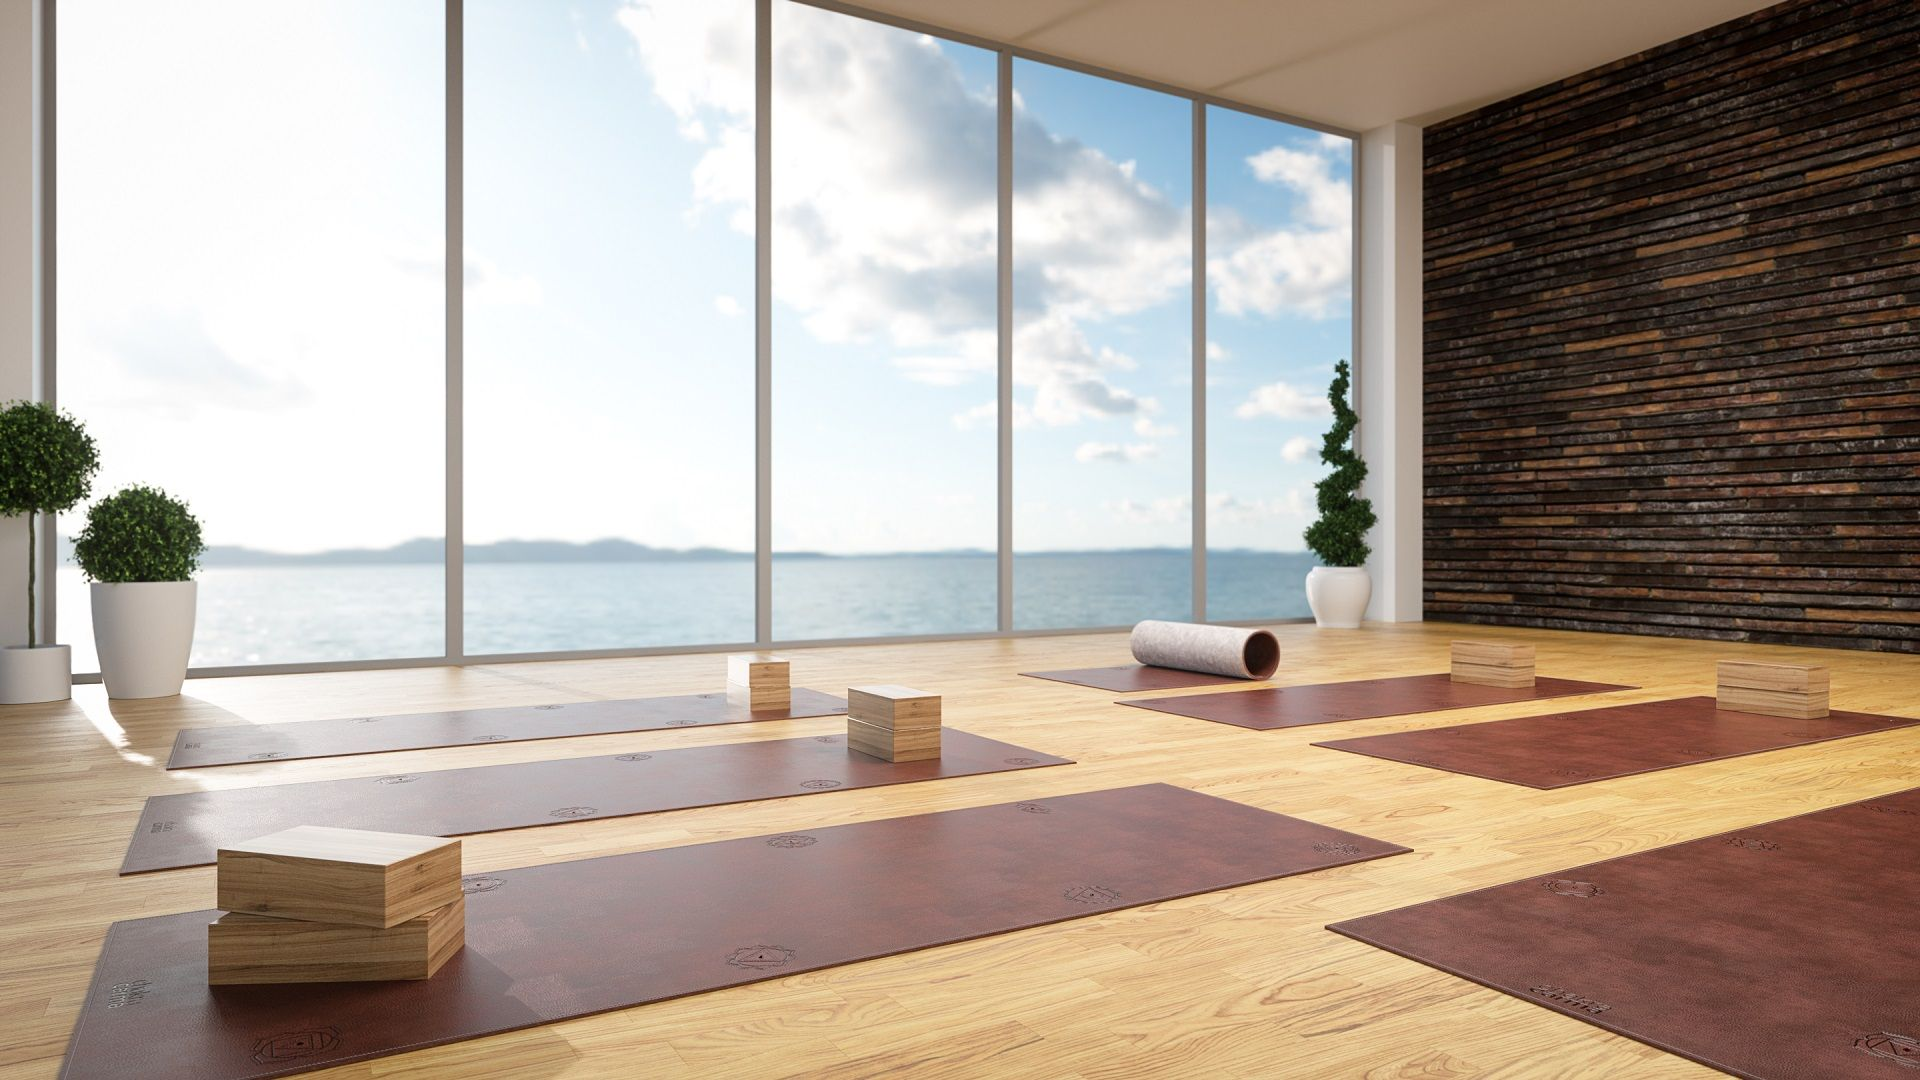 These Are The World's Most Expensive Yoga Mats